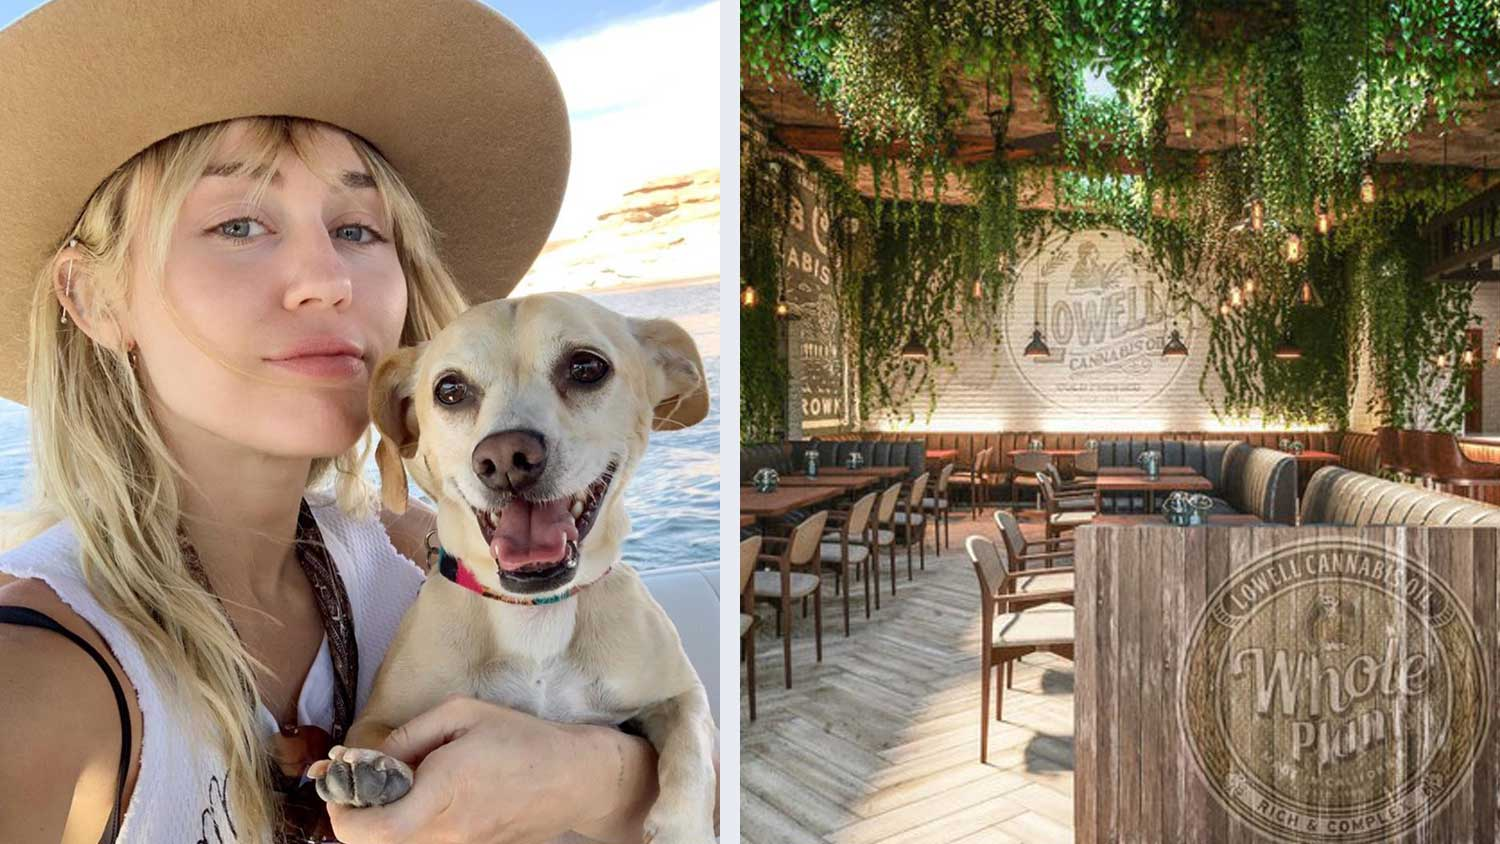 Get High and Eat Vegan Food at Miley Cyrus's New Restaurant